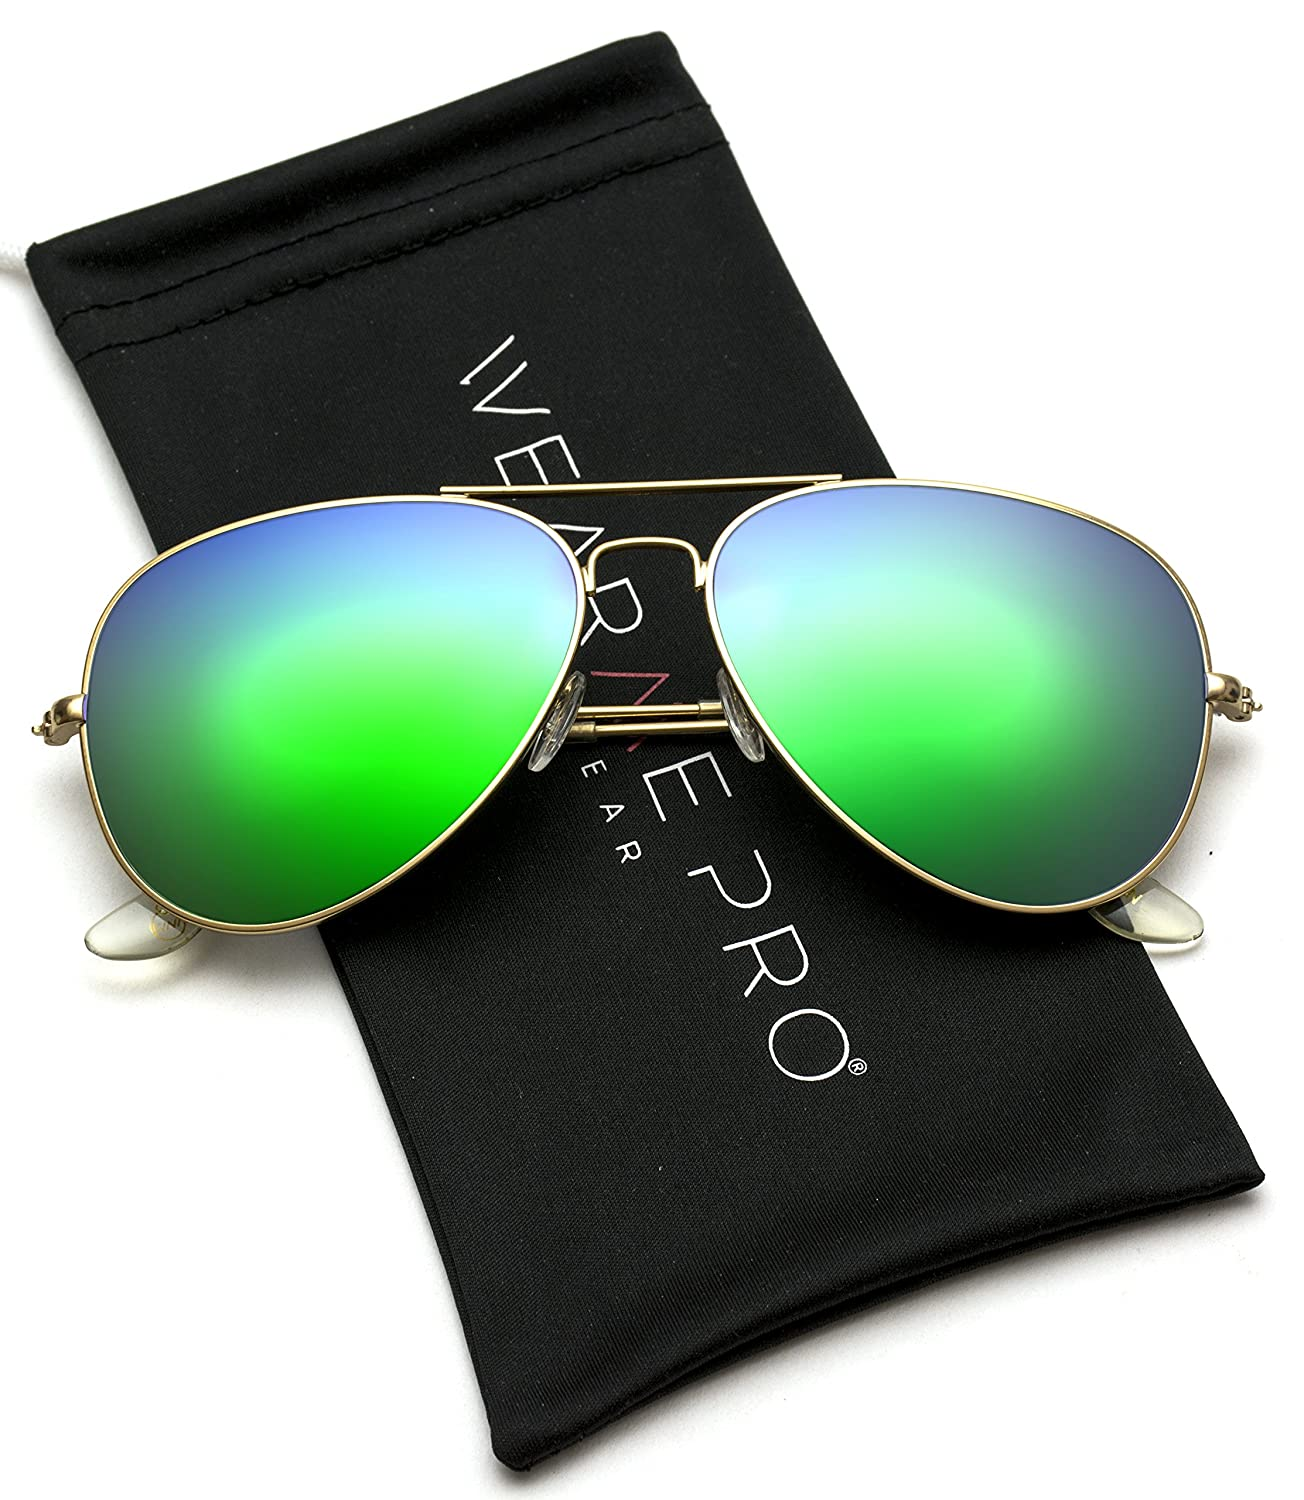 a03a18e9efd aviator full silver mirror metal frame sunglasses  Amazon.in  Clothing    Accessories